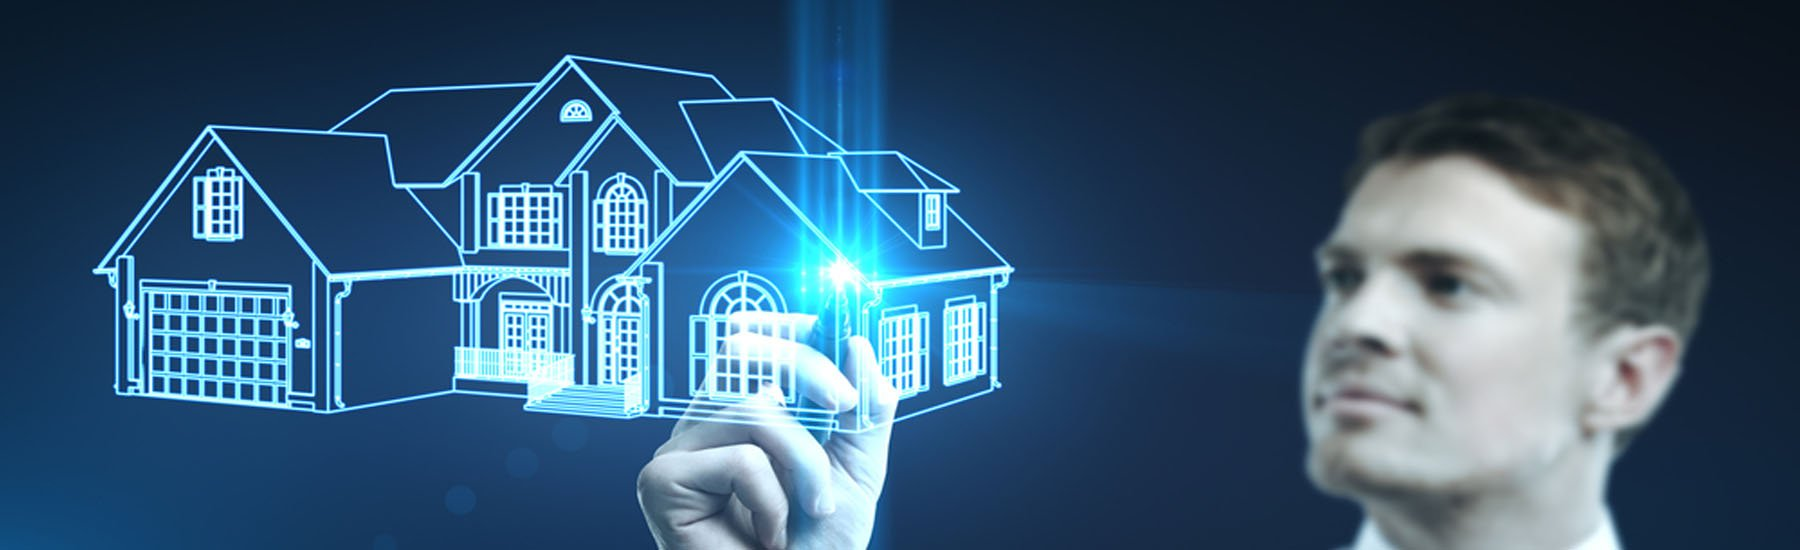 property investment banner 2